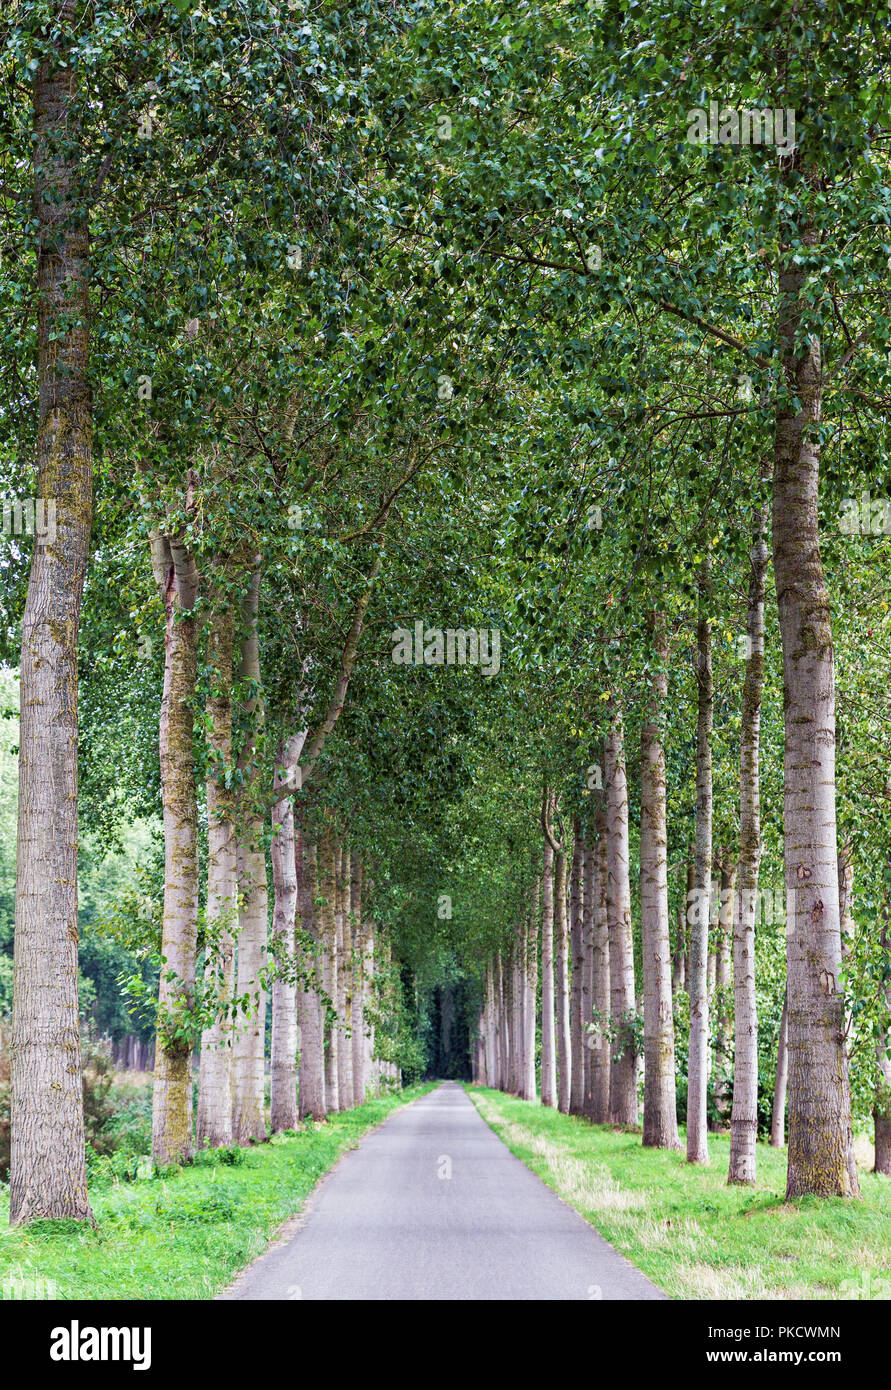 Empty country road lined by green tree alley, landscape picture with vanishing point - Stock Image